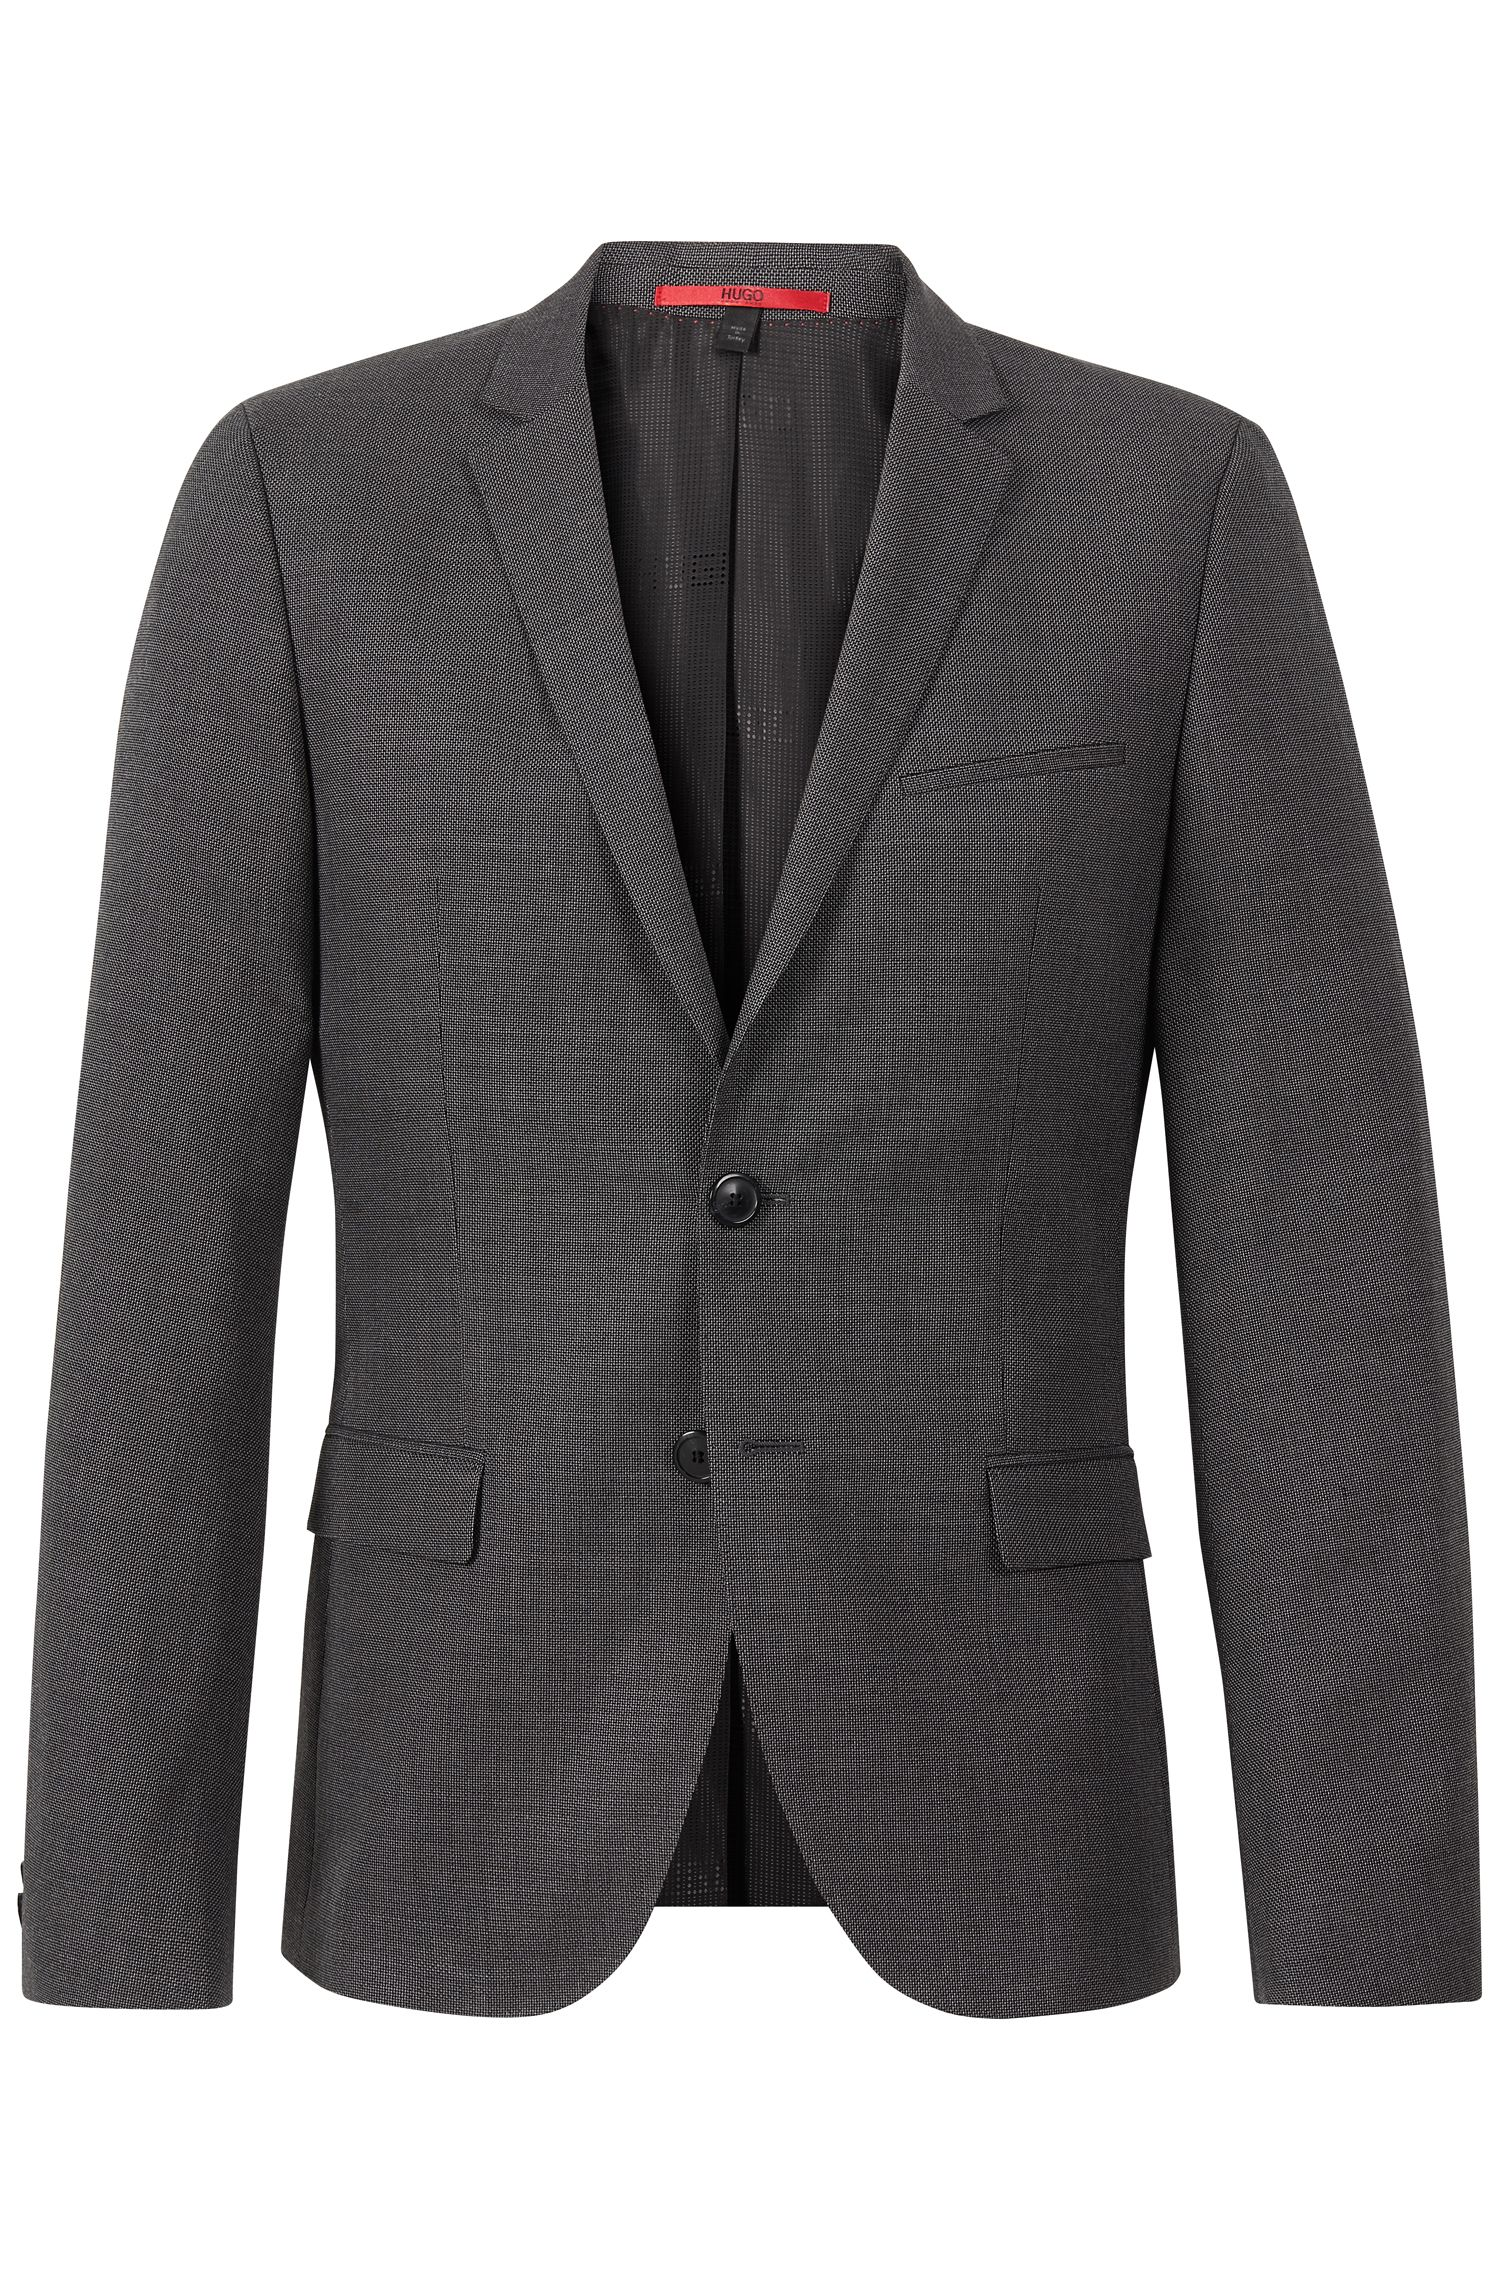 'Arti' | Slim Fit, Virgin Wool Cotton Nailhead Sport Coat